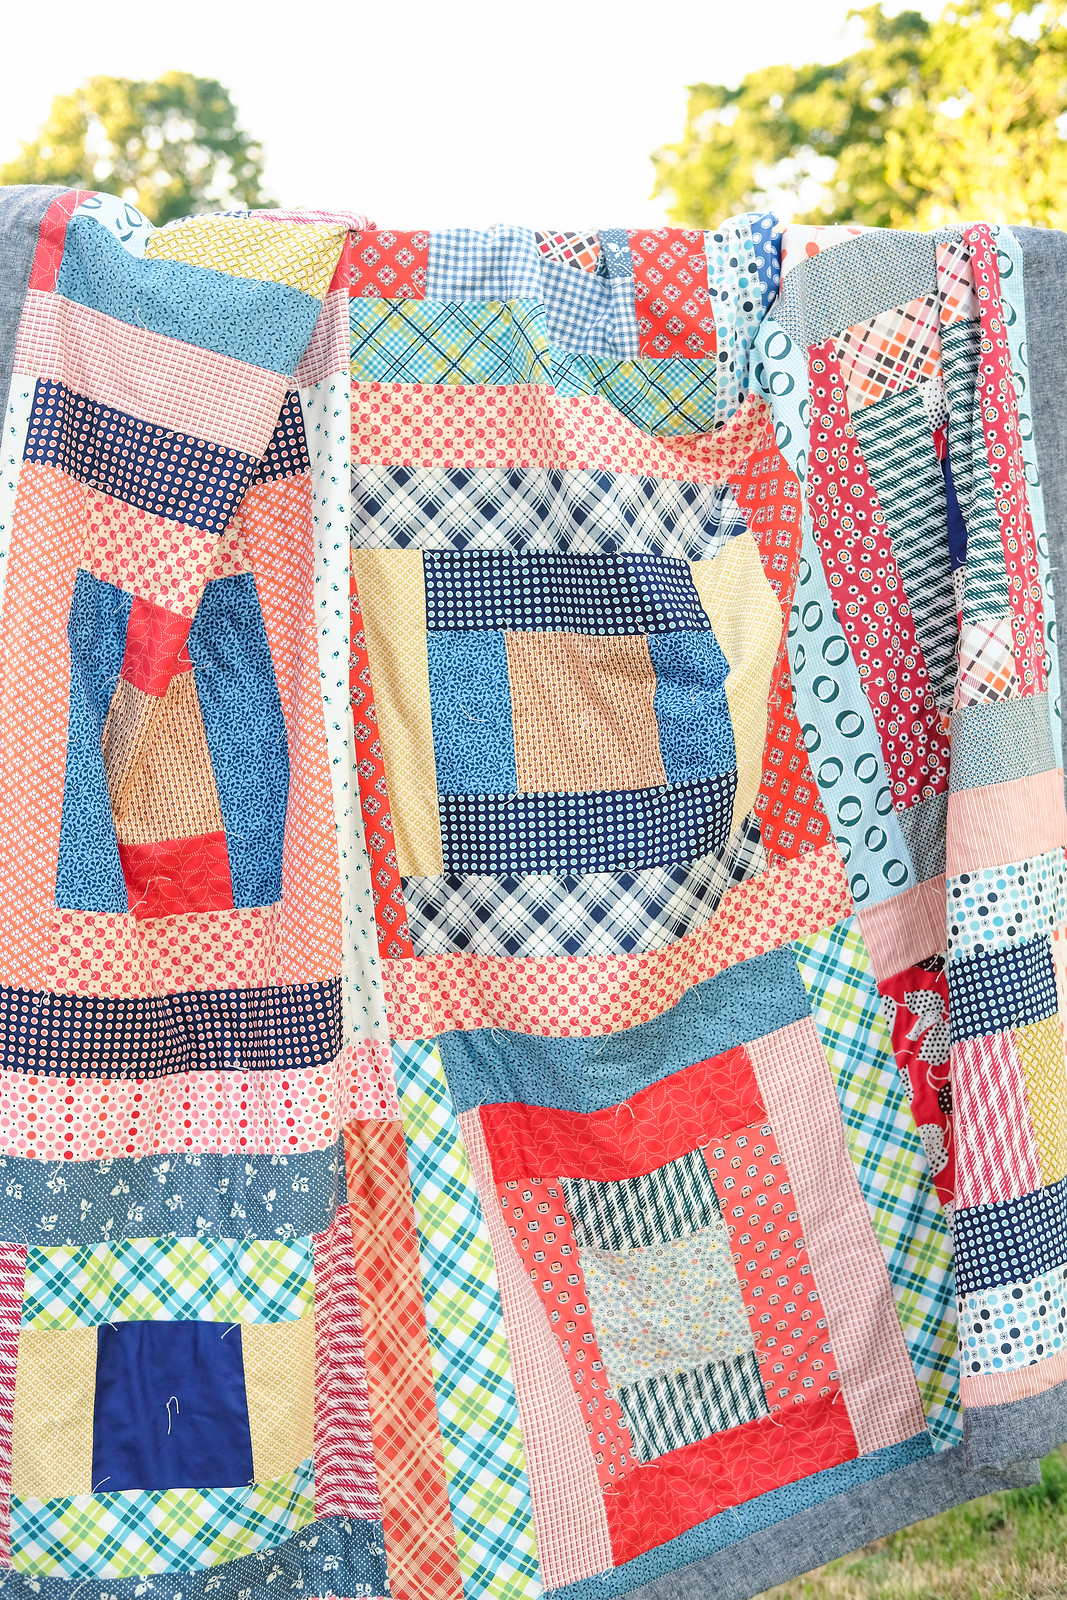 May Giant Block Picnic Quilt